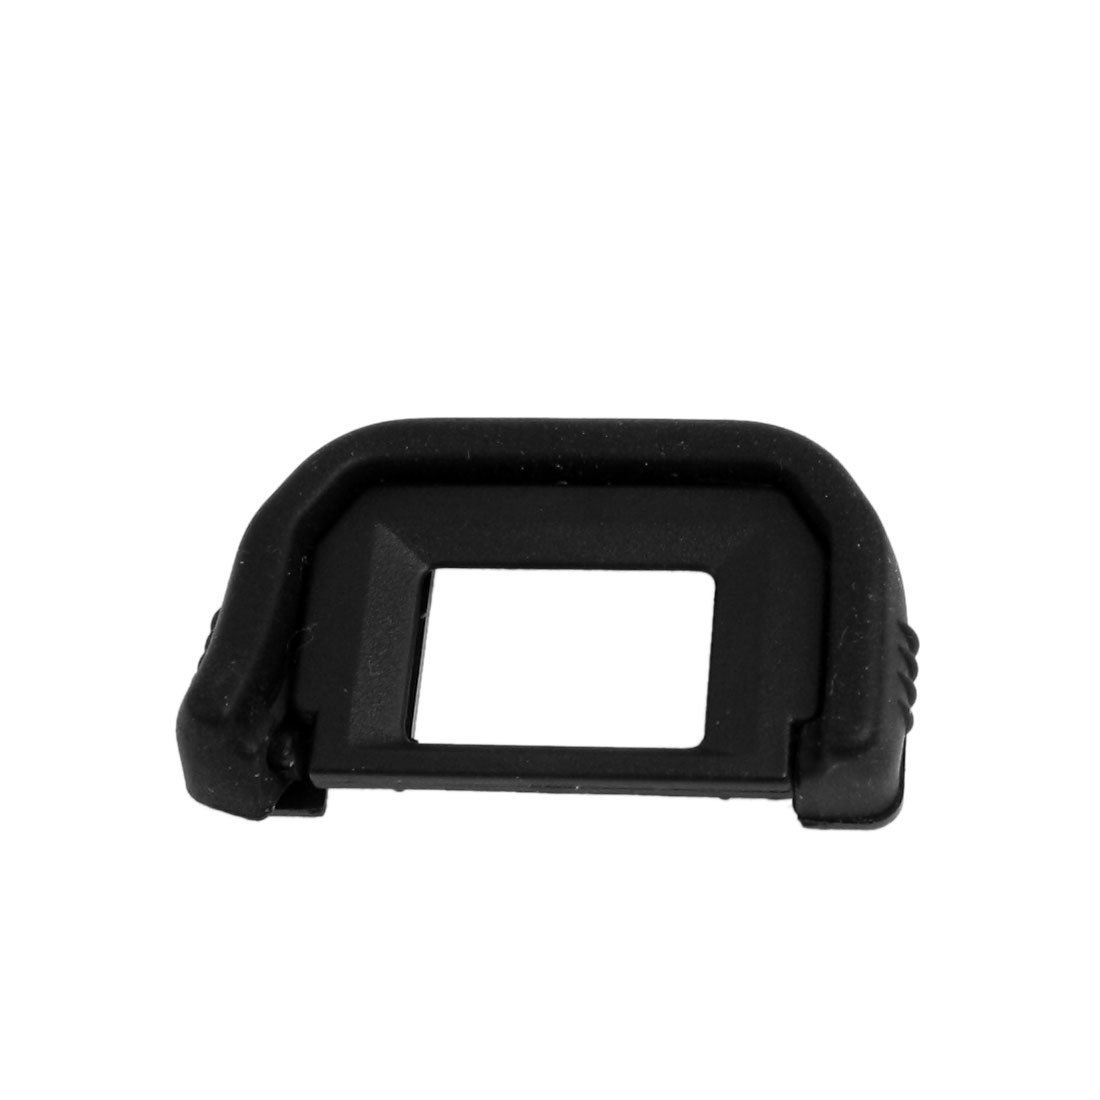 Filter Screw Mount Metal Plastic Lens Hood for Digital Camera Black